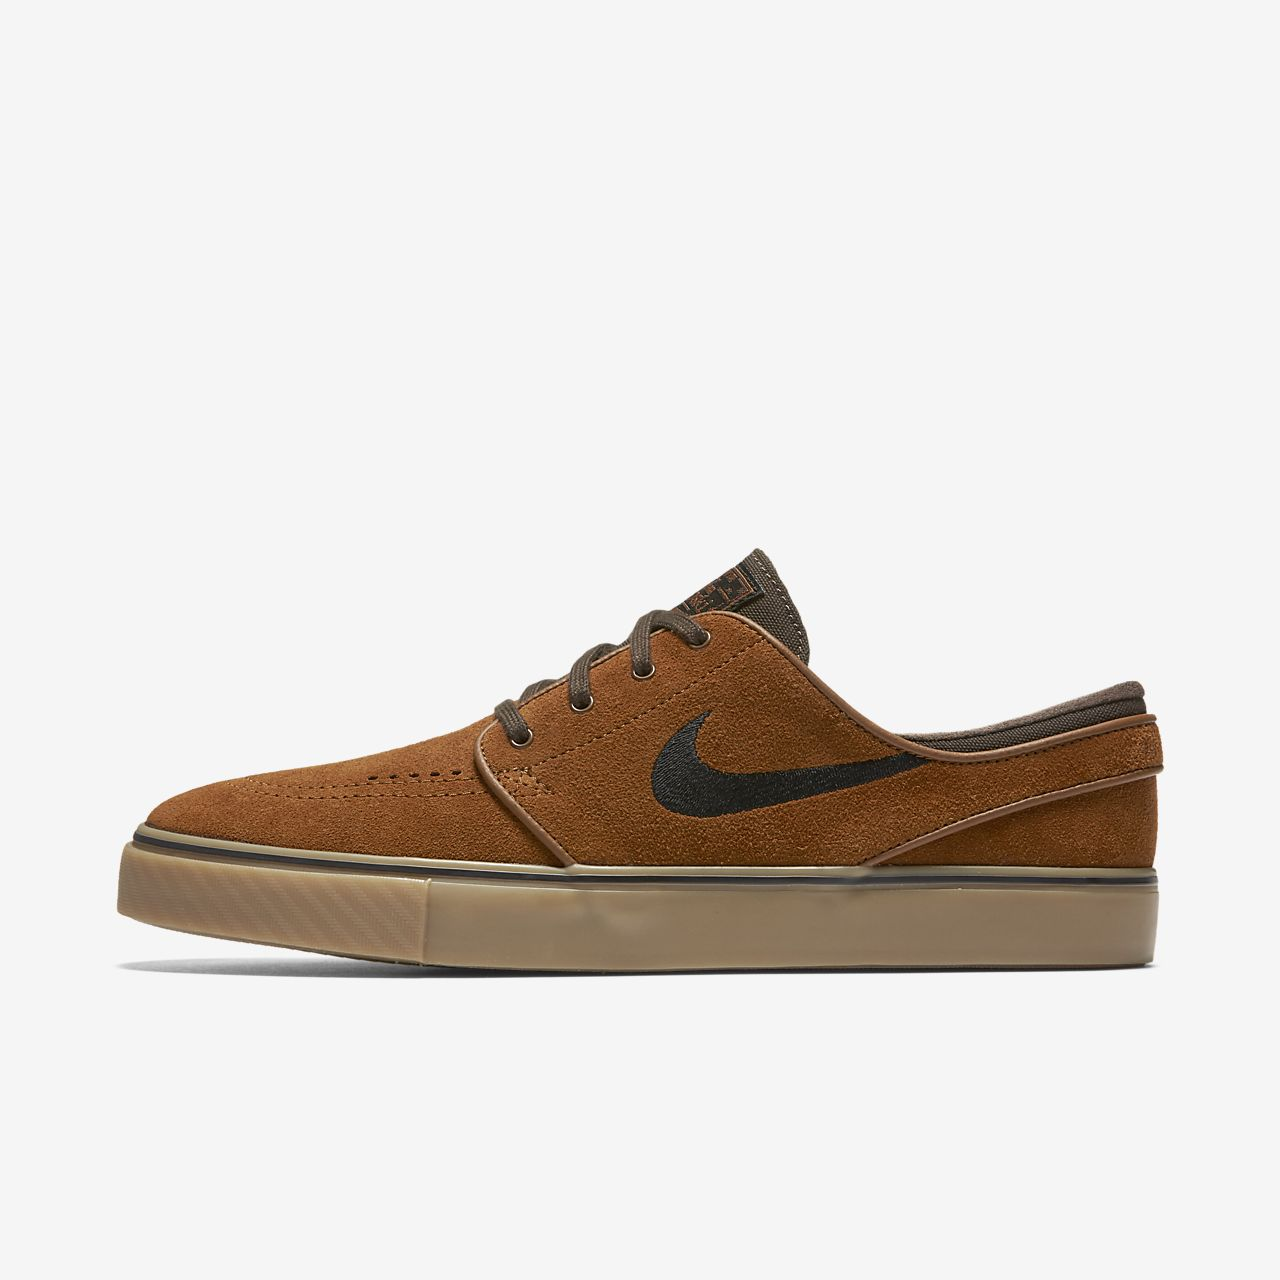 nike sb zoom stefan janoski men 39 s skateboarding shoe gb. Black Bedroom Furniture Sets. Home Design Ideas